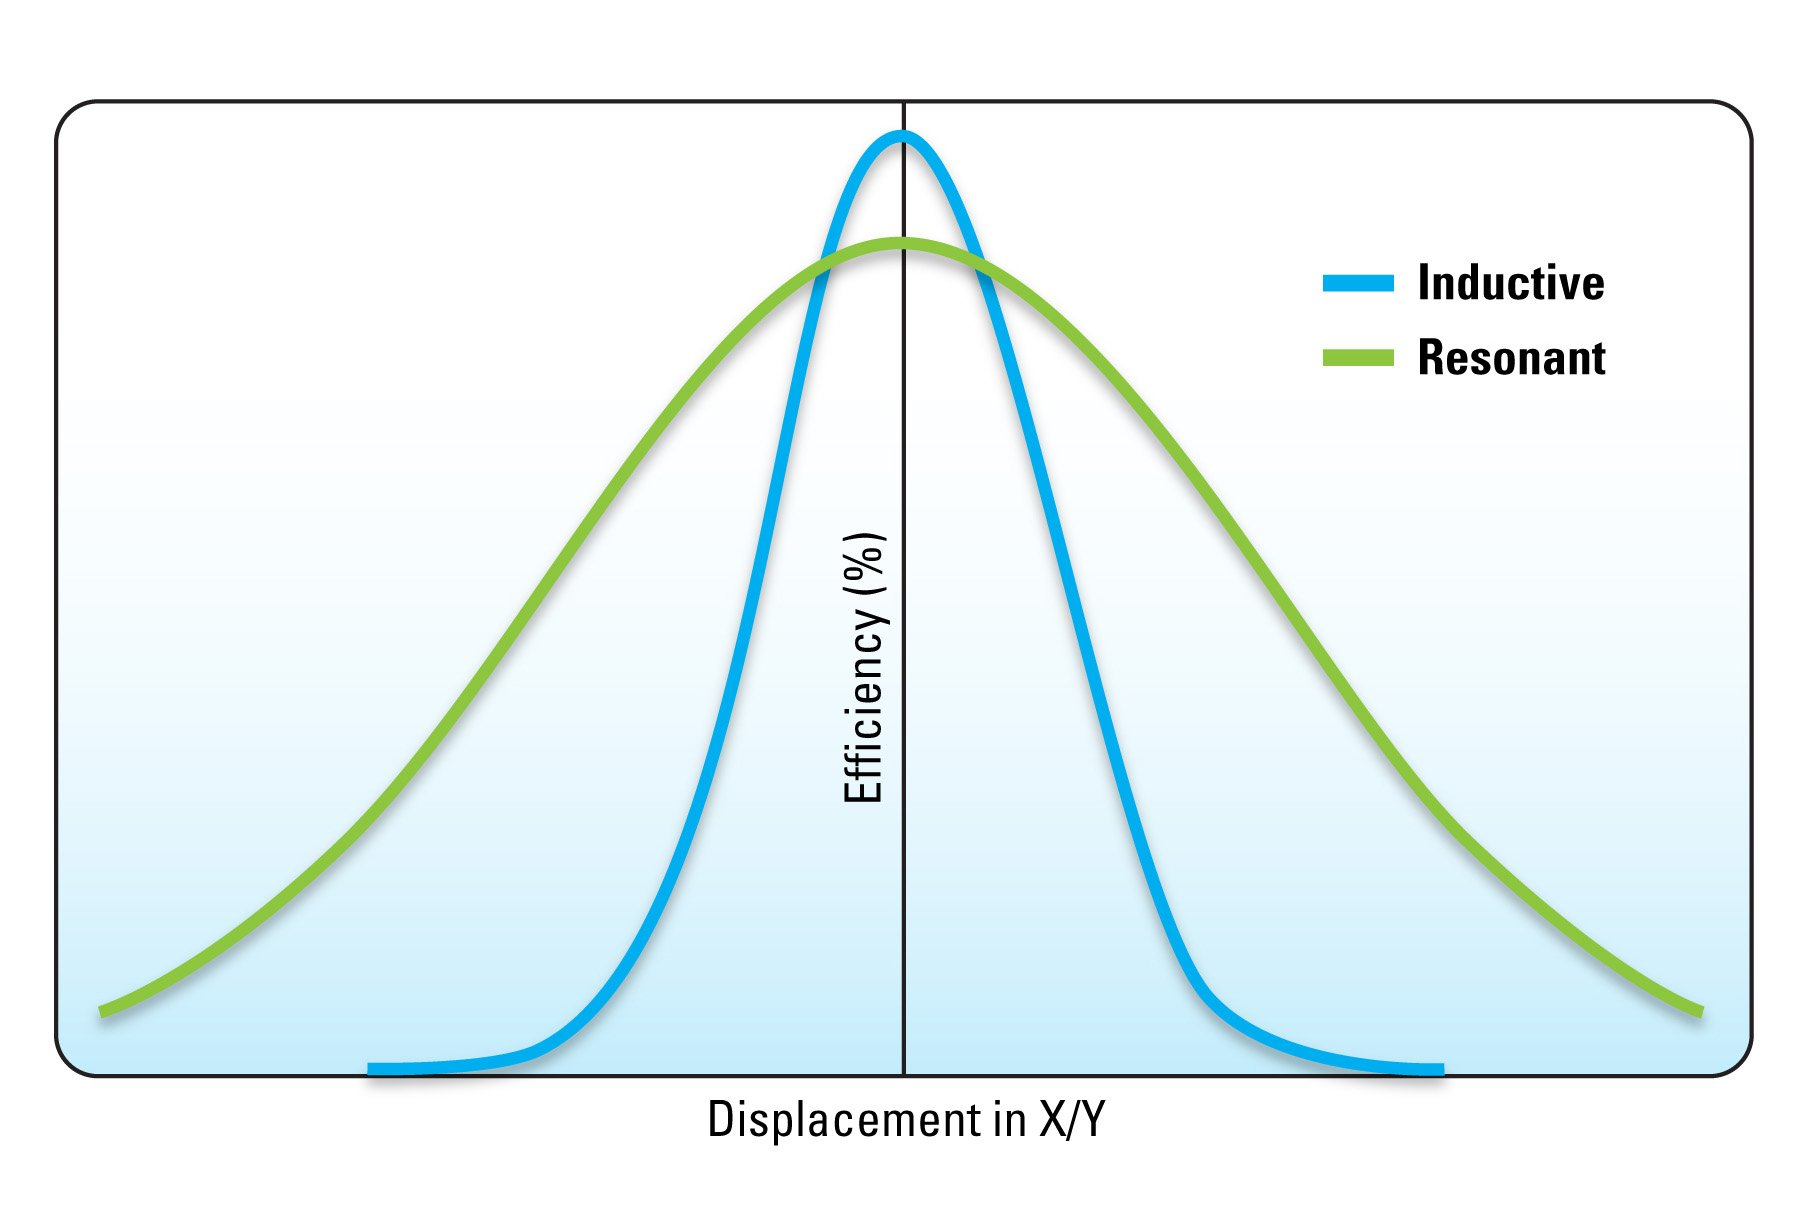 Figure 3: Magnetic inductance technology achieves greater efficiency levels when displacement is minimal. Magnetic resonance cannot achieve the same performance when transmitter and receiver are close together, but efficiency does not drop off as quickly when displacement increases.